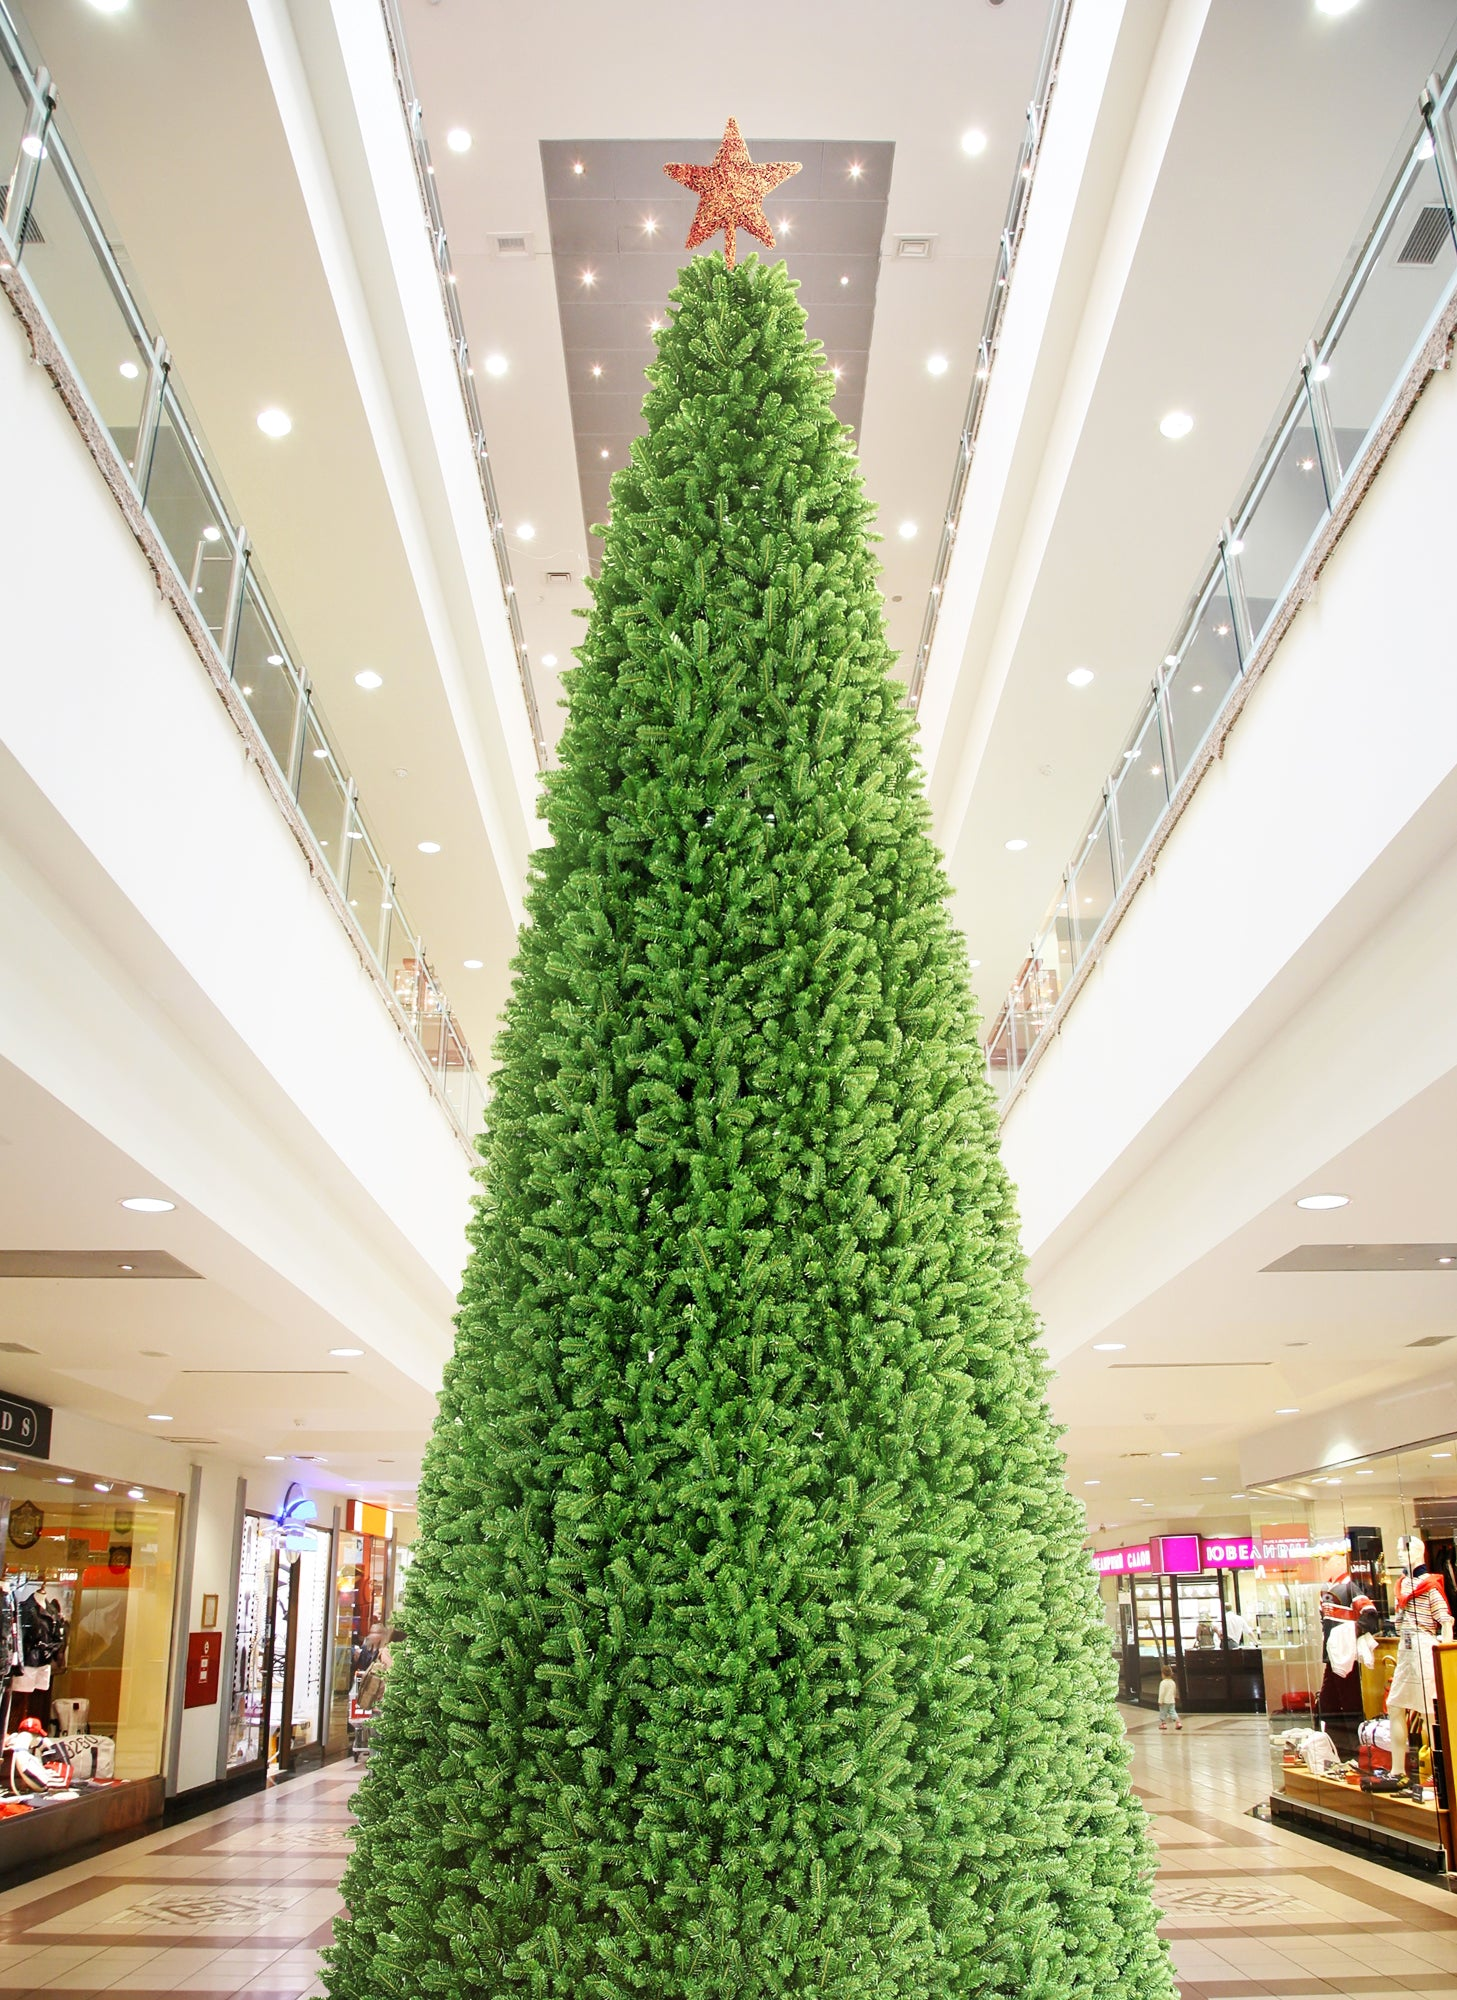 20 Foot Giant Commercial Artificial Christmas Tree With Warm White LED Lights